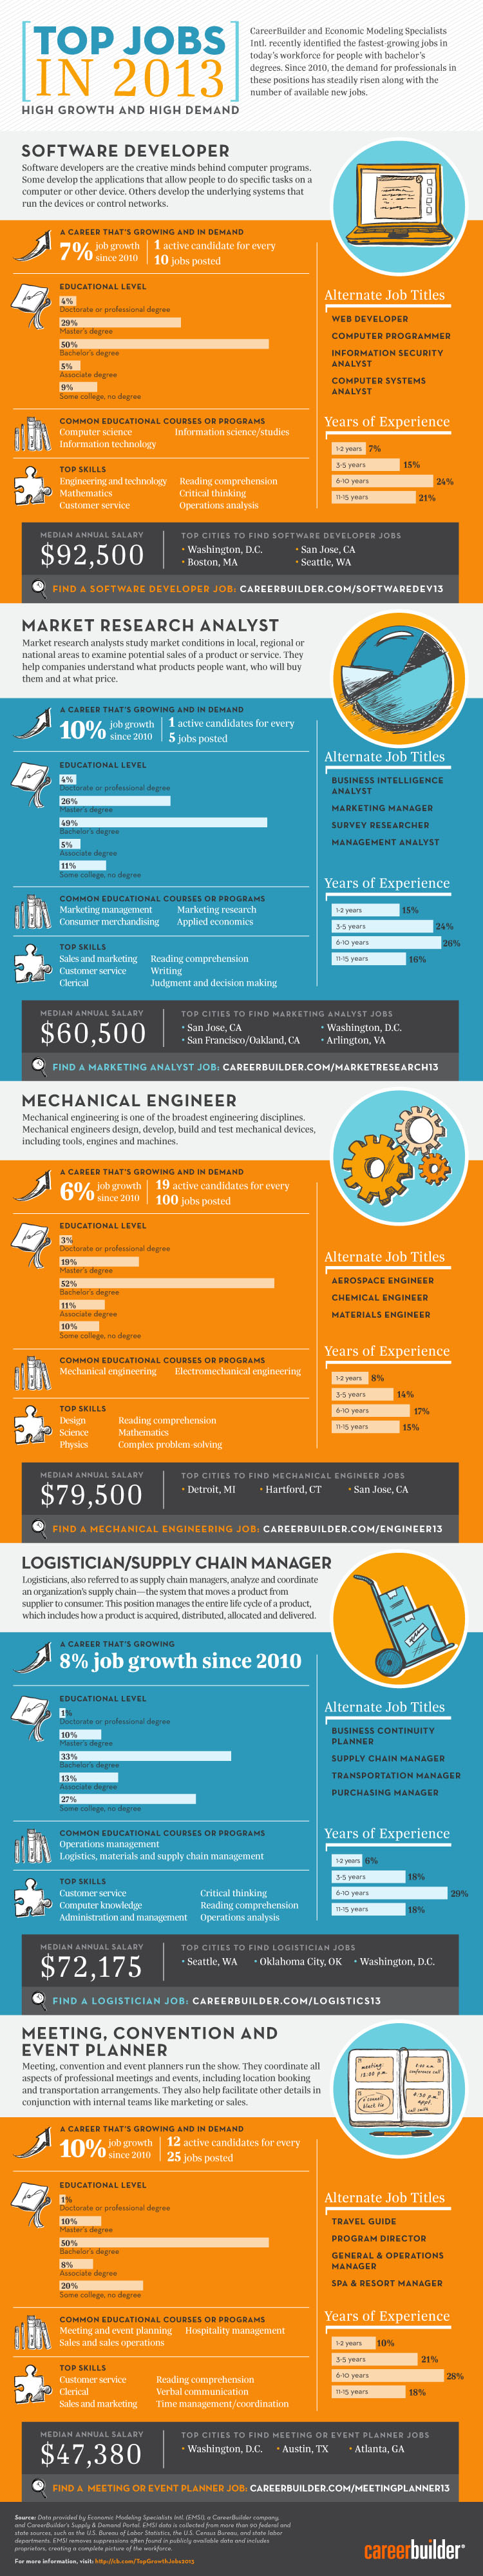 5 Most Growing and High Demand Jobs in 2013